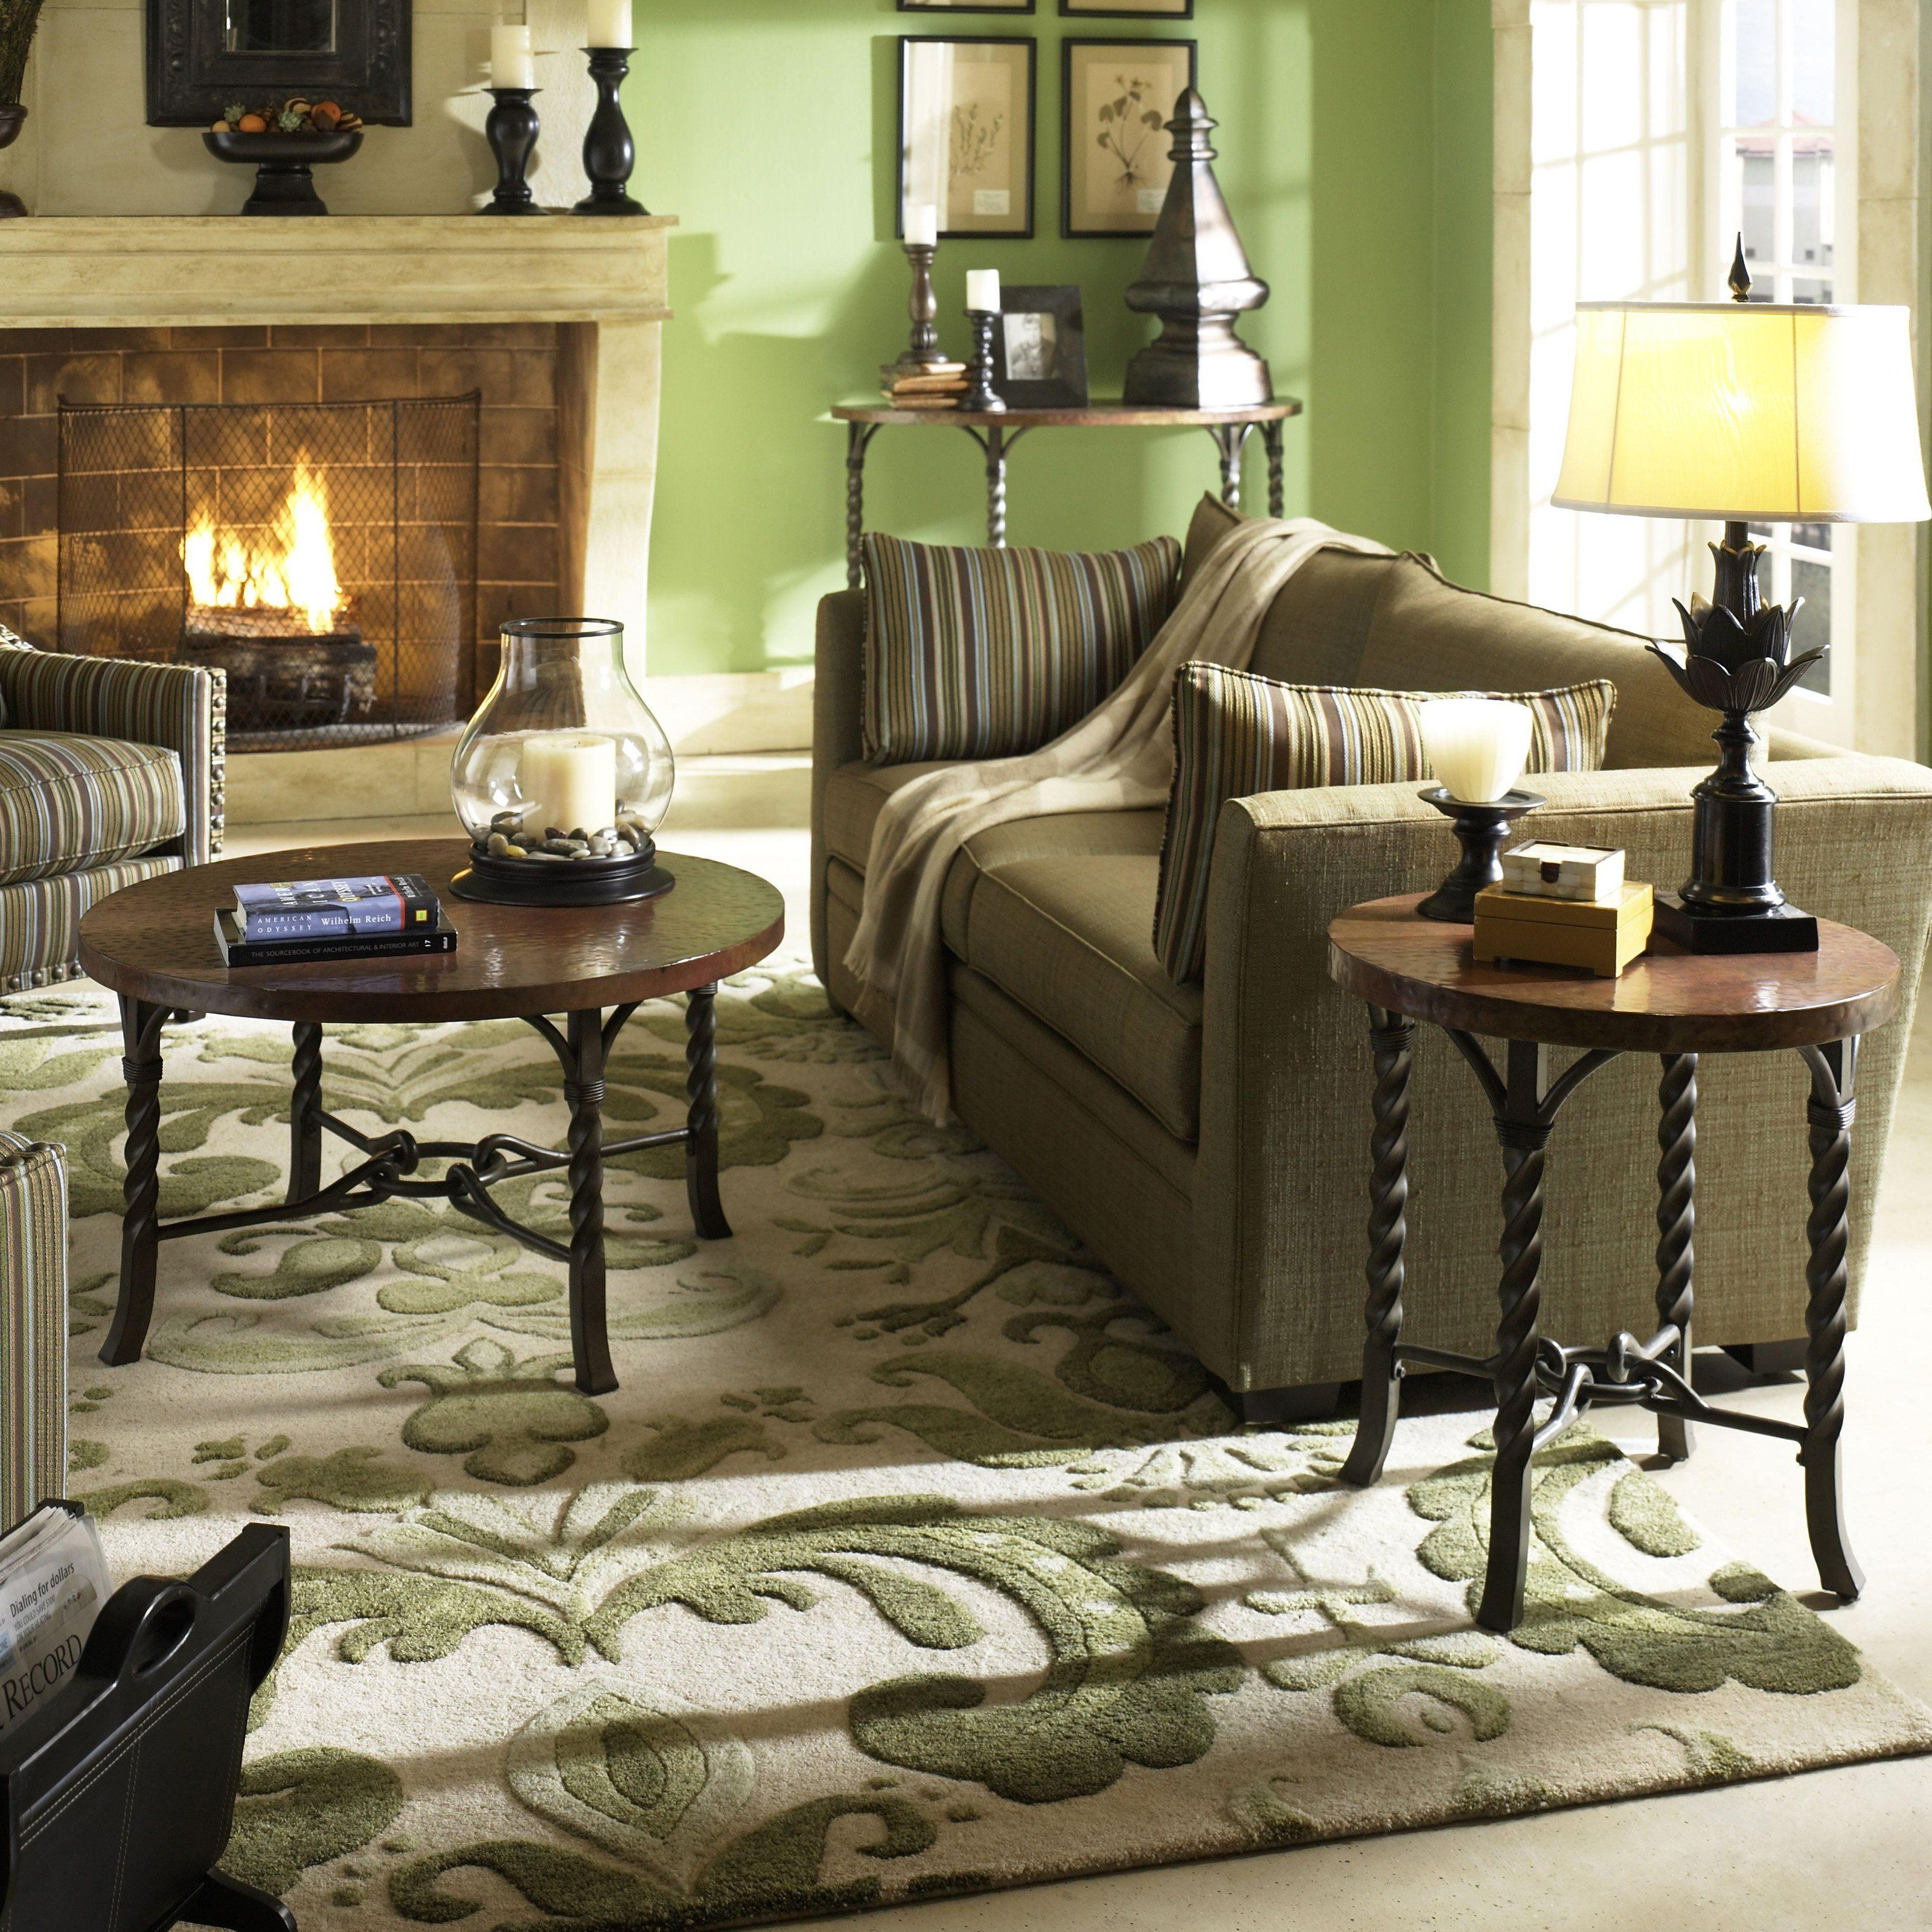 Have To Have It Riverside Medley Round Coffee Table Set Camden 1192 99 Furniture Riverside Furniture Rustic Charm Living Room [ 3200 x 3200 Pixel ]